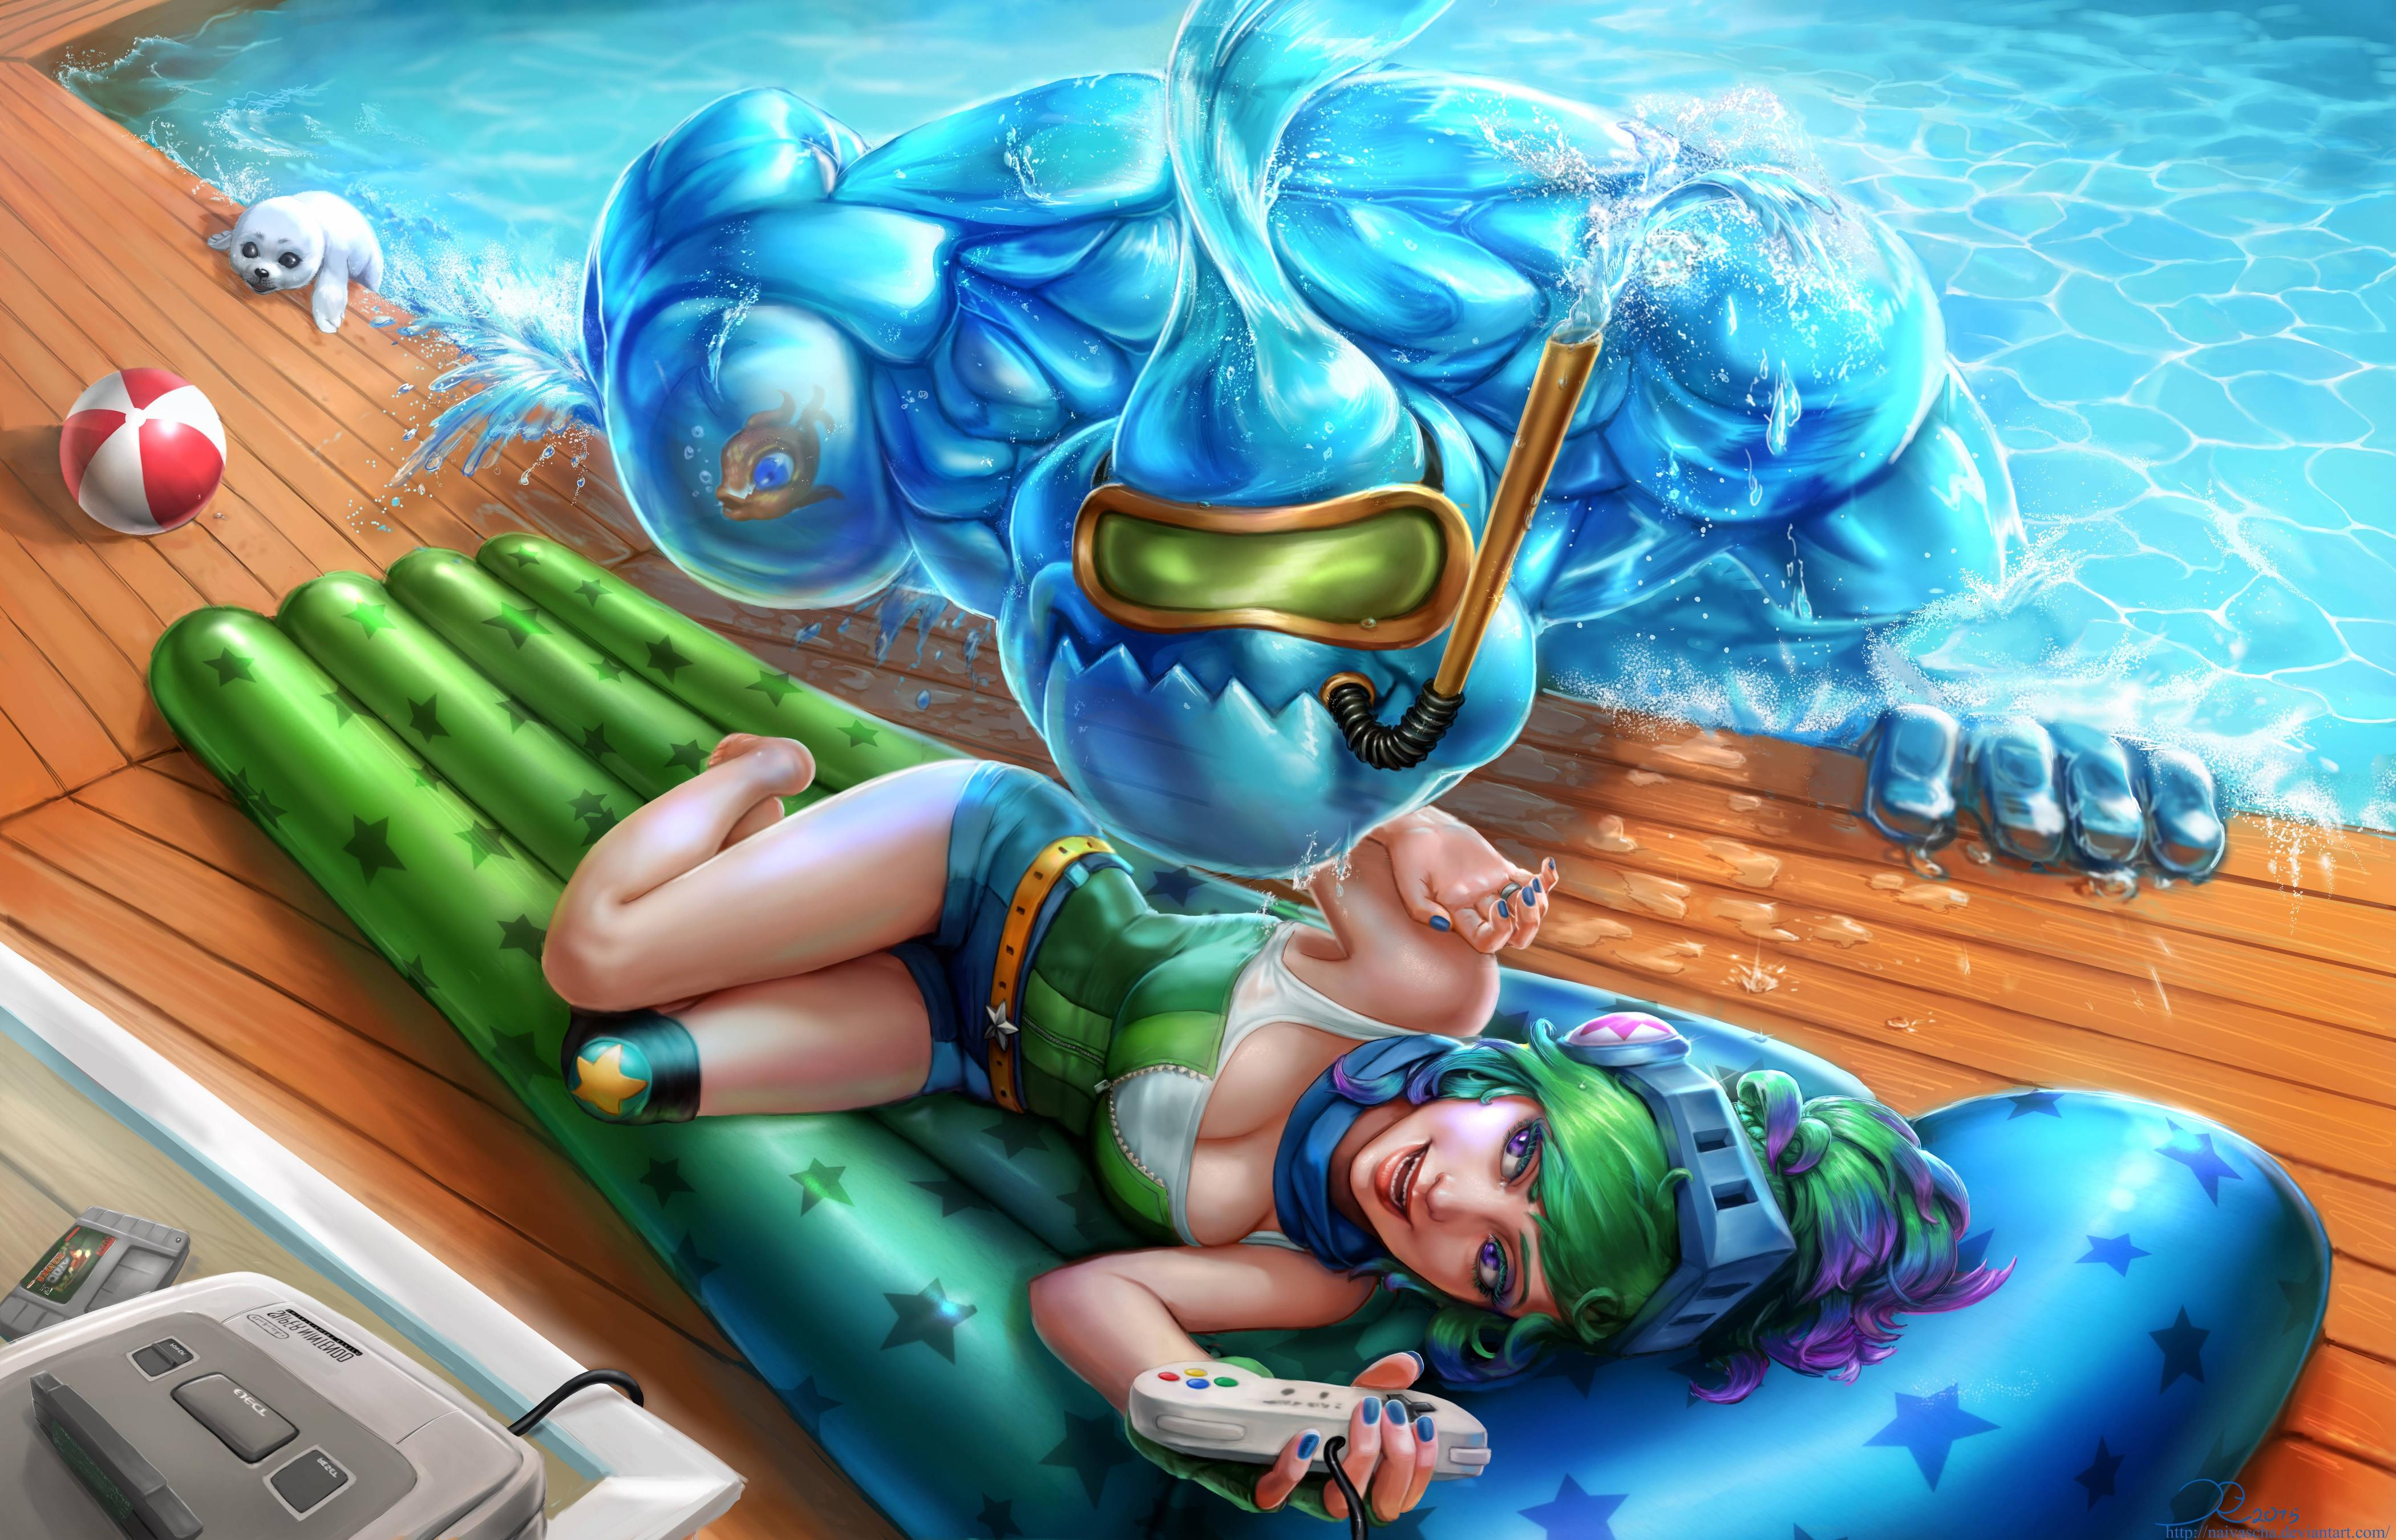 Riven & Zac Pool Party wallpaper